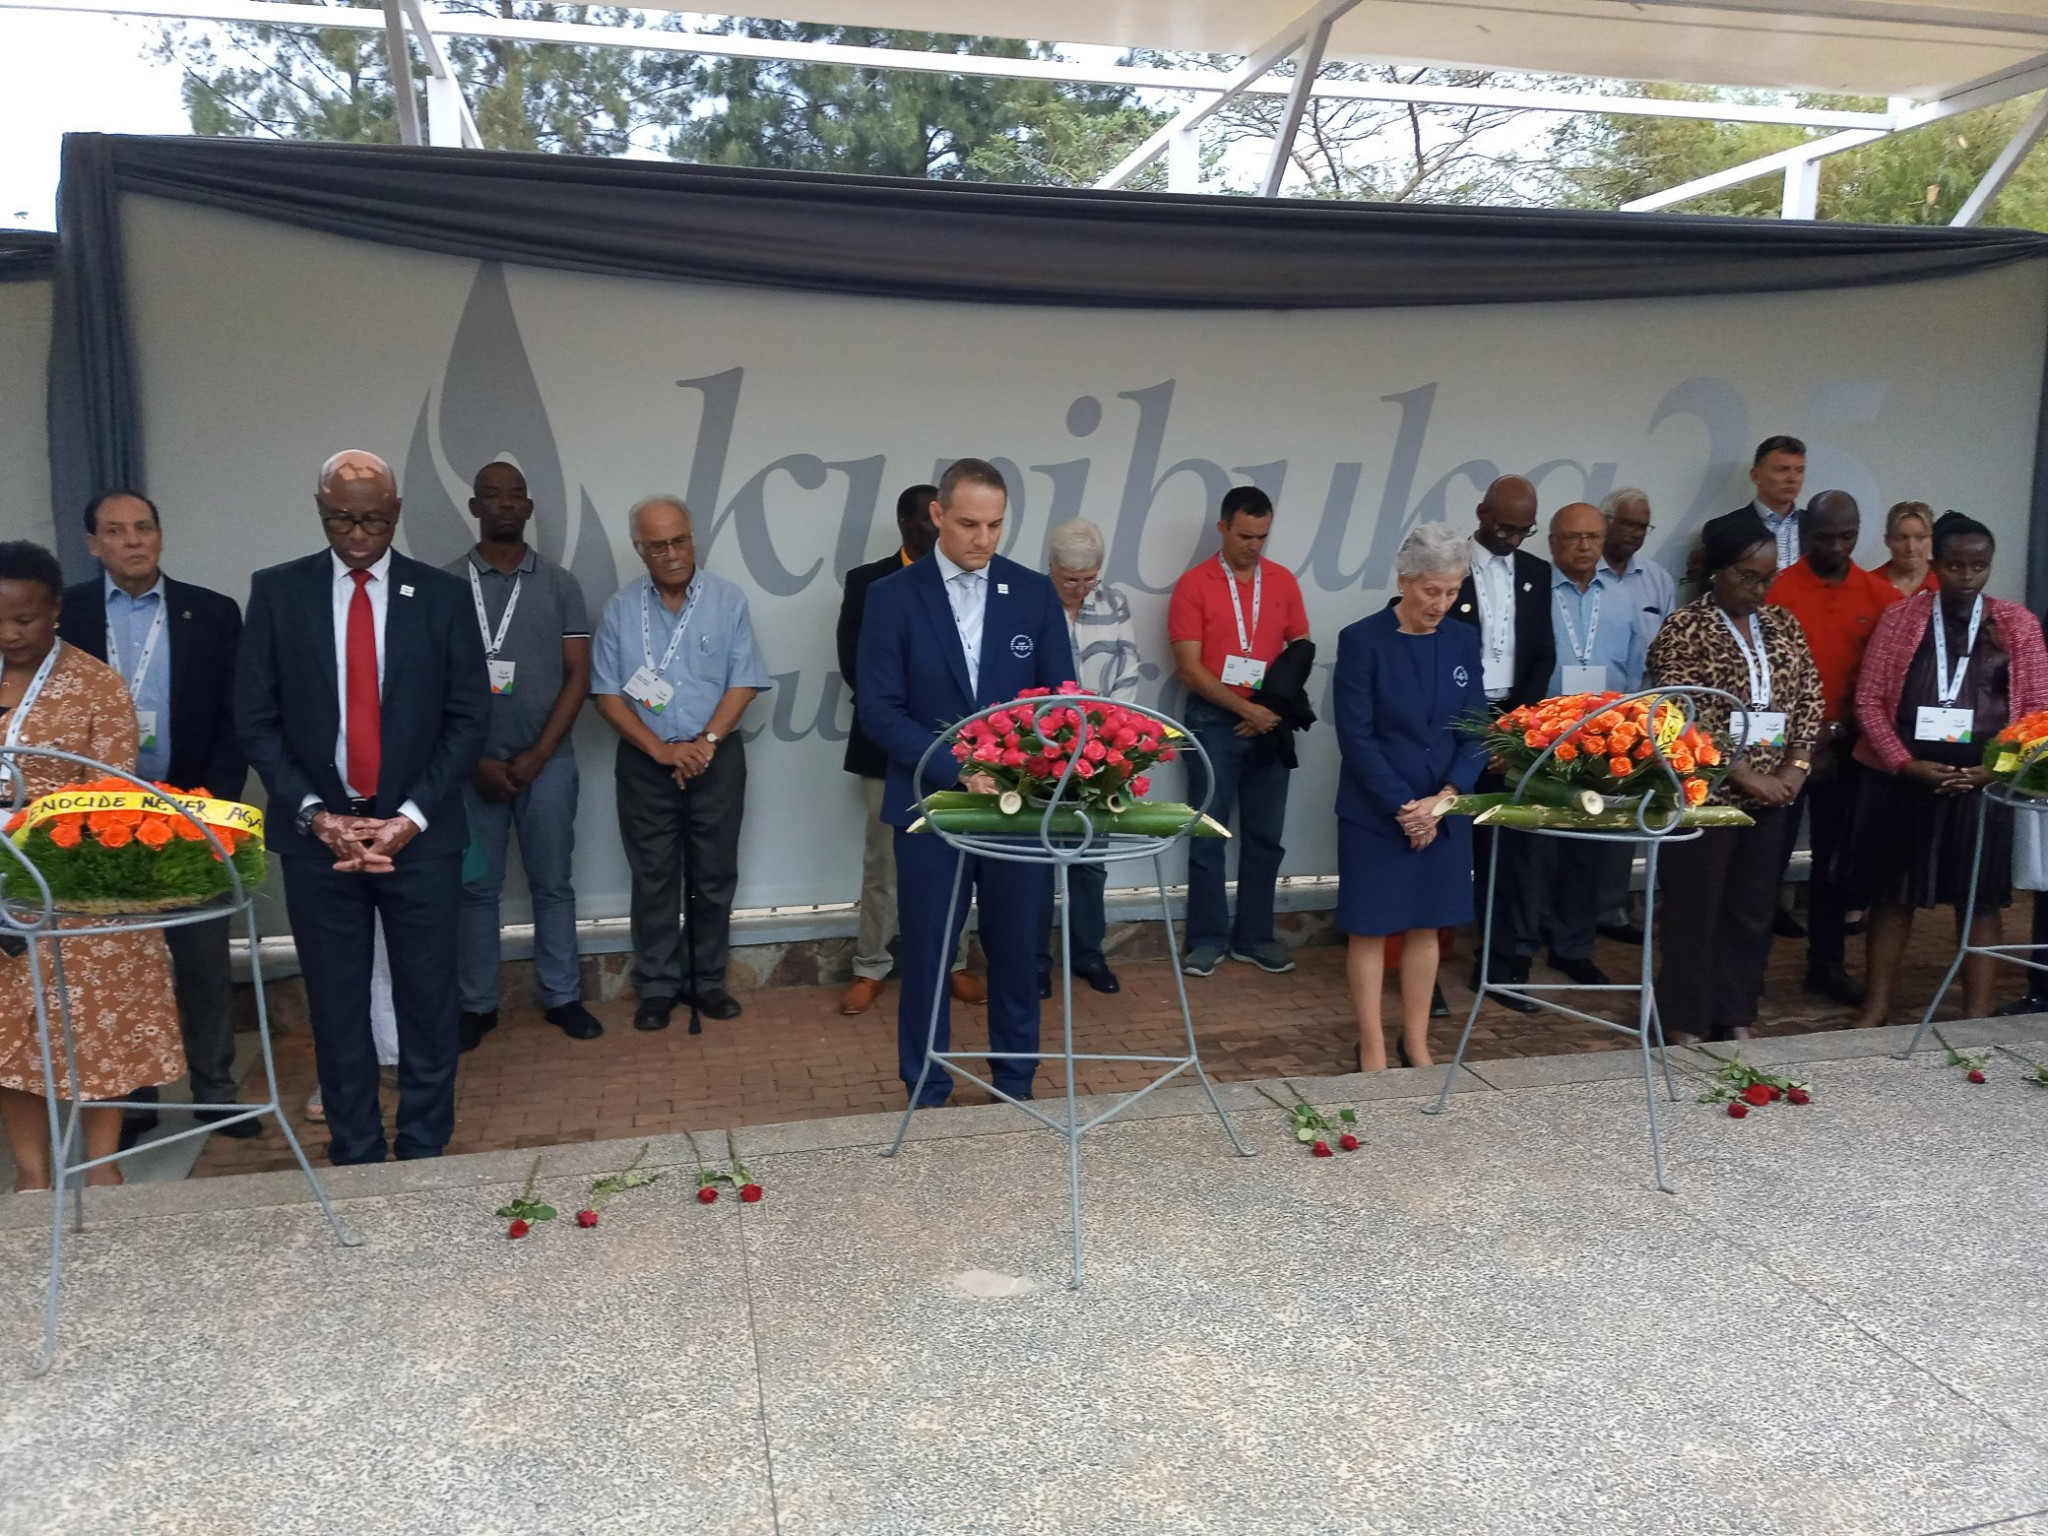 Commonwealth Games Federation General Assembly in Kigali starts with dancing and wreath-laying ceremony